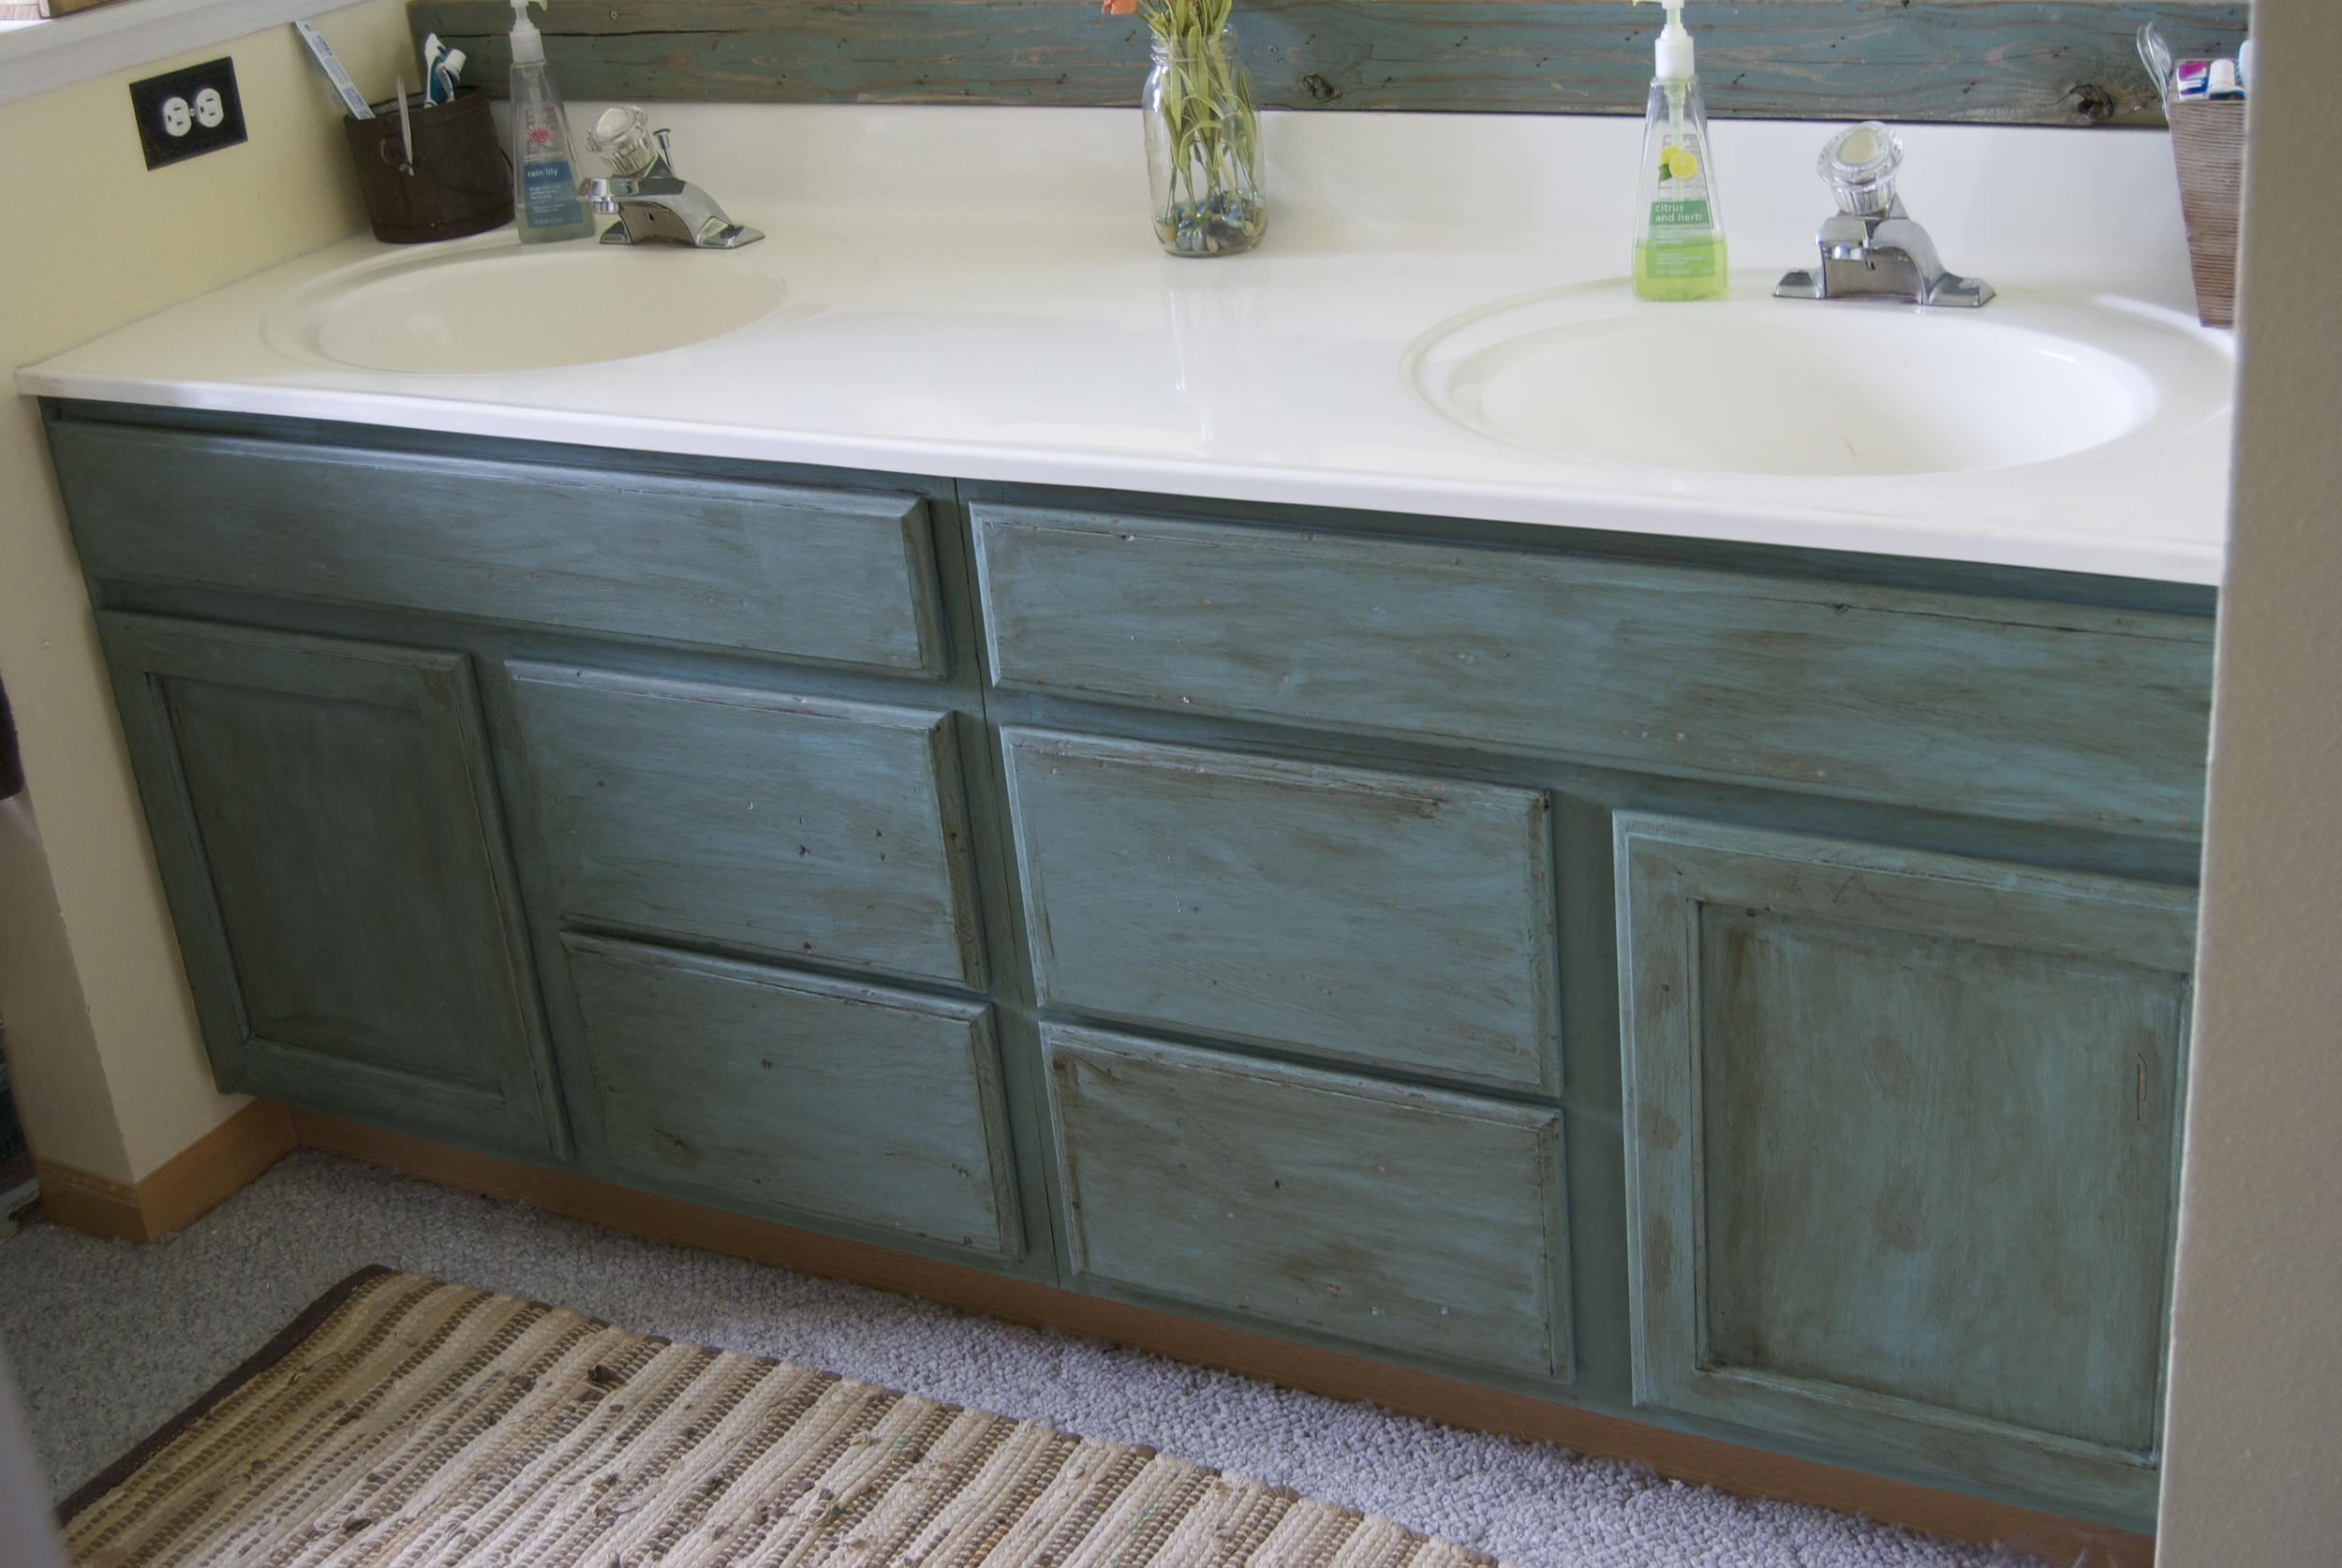 Annie sloan chalk paint bathroom cabinets - The Store That I Bought Annie Sloan Chalk Paint Was From Eastham Interiors In Ft Collins Colorado I Had Heard Somewhere In Ft Collins Sold Chalk Paint